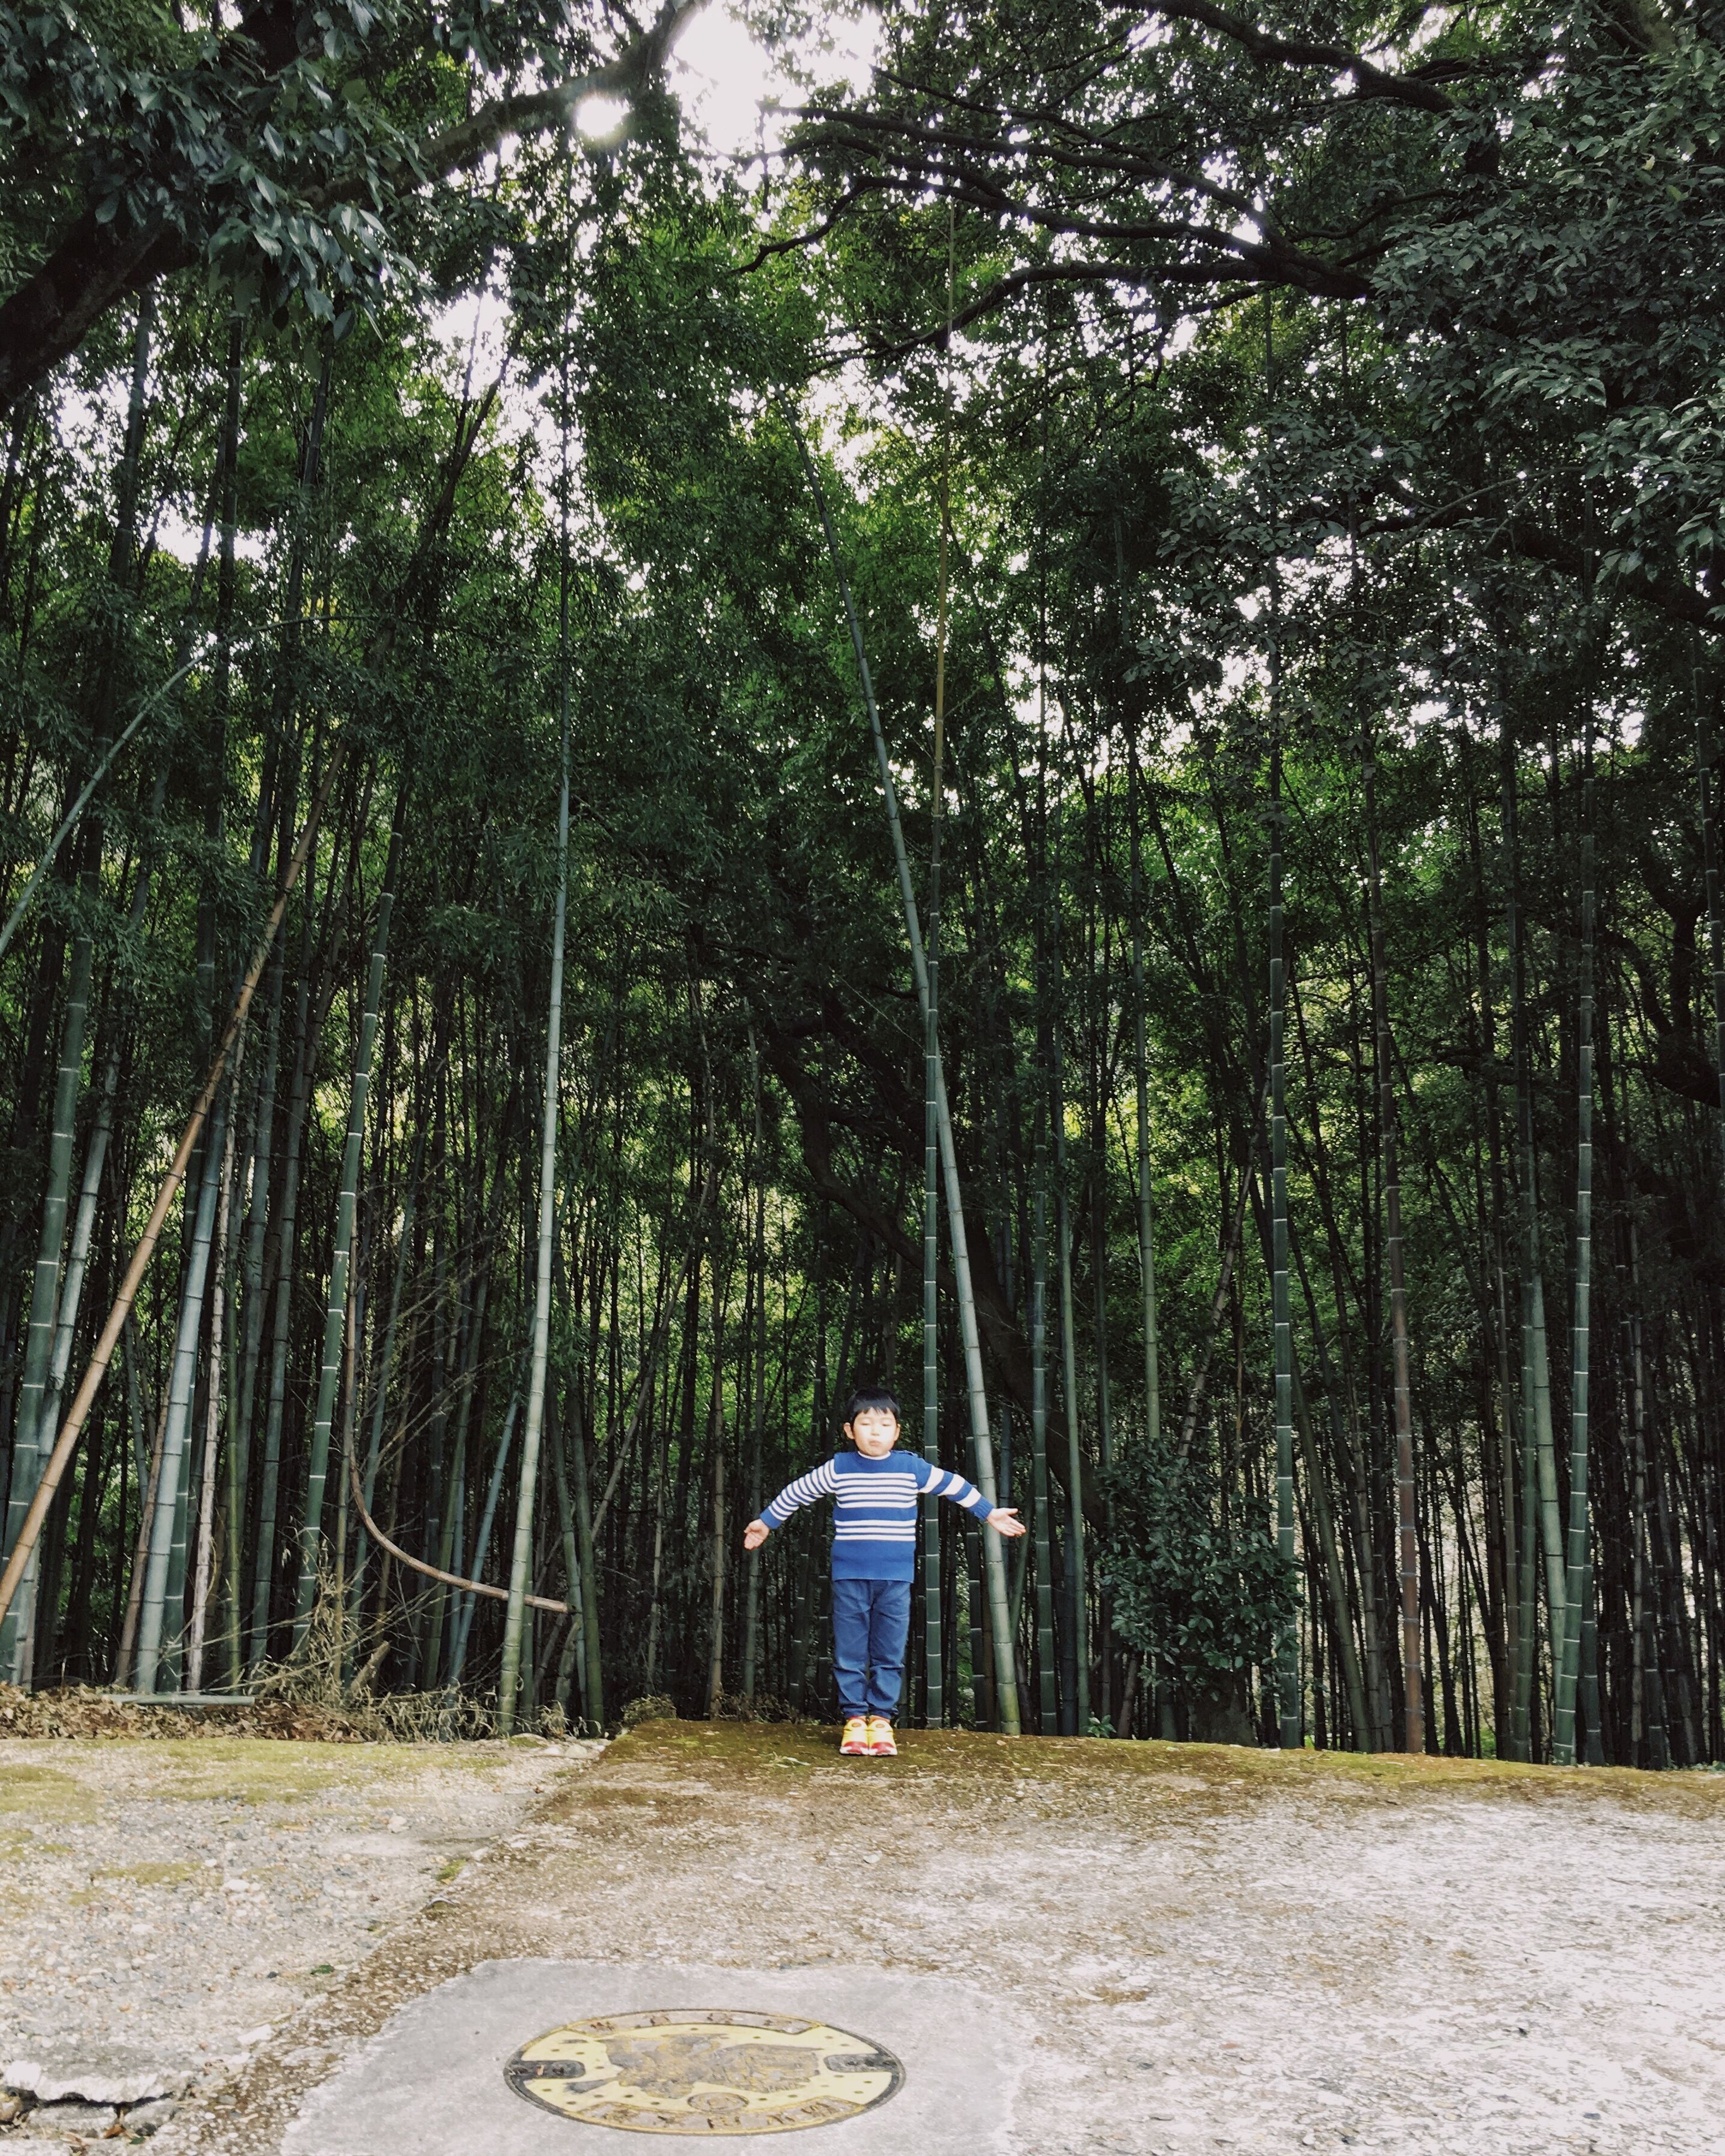 full length, one person, tree, nature, one man only, only men, adults only, real people, outdoors, growth, men, beauty in nature, adult, people, day